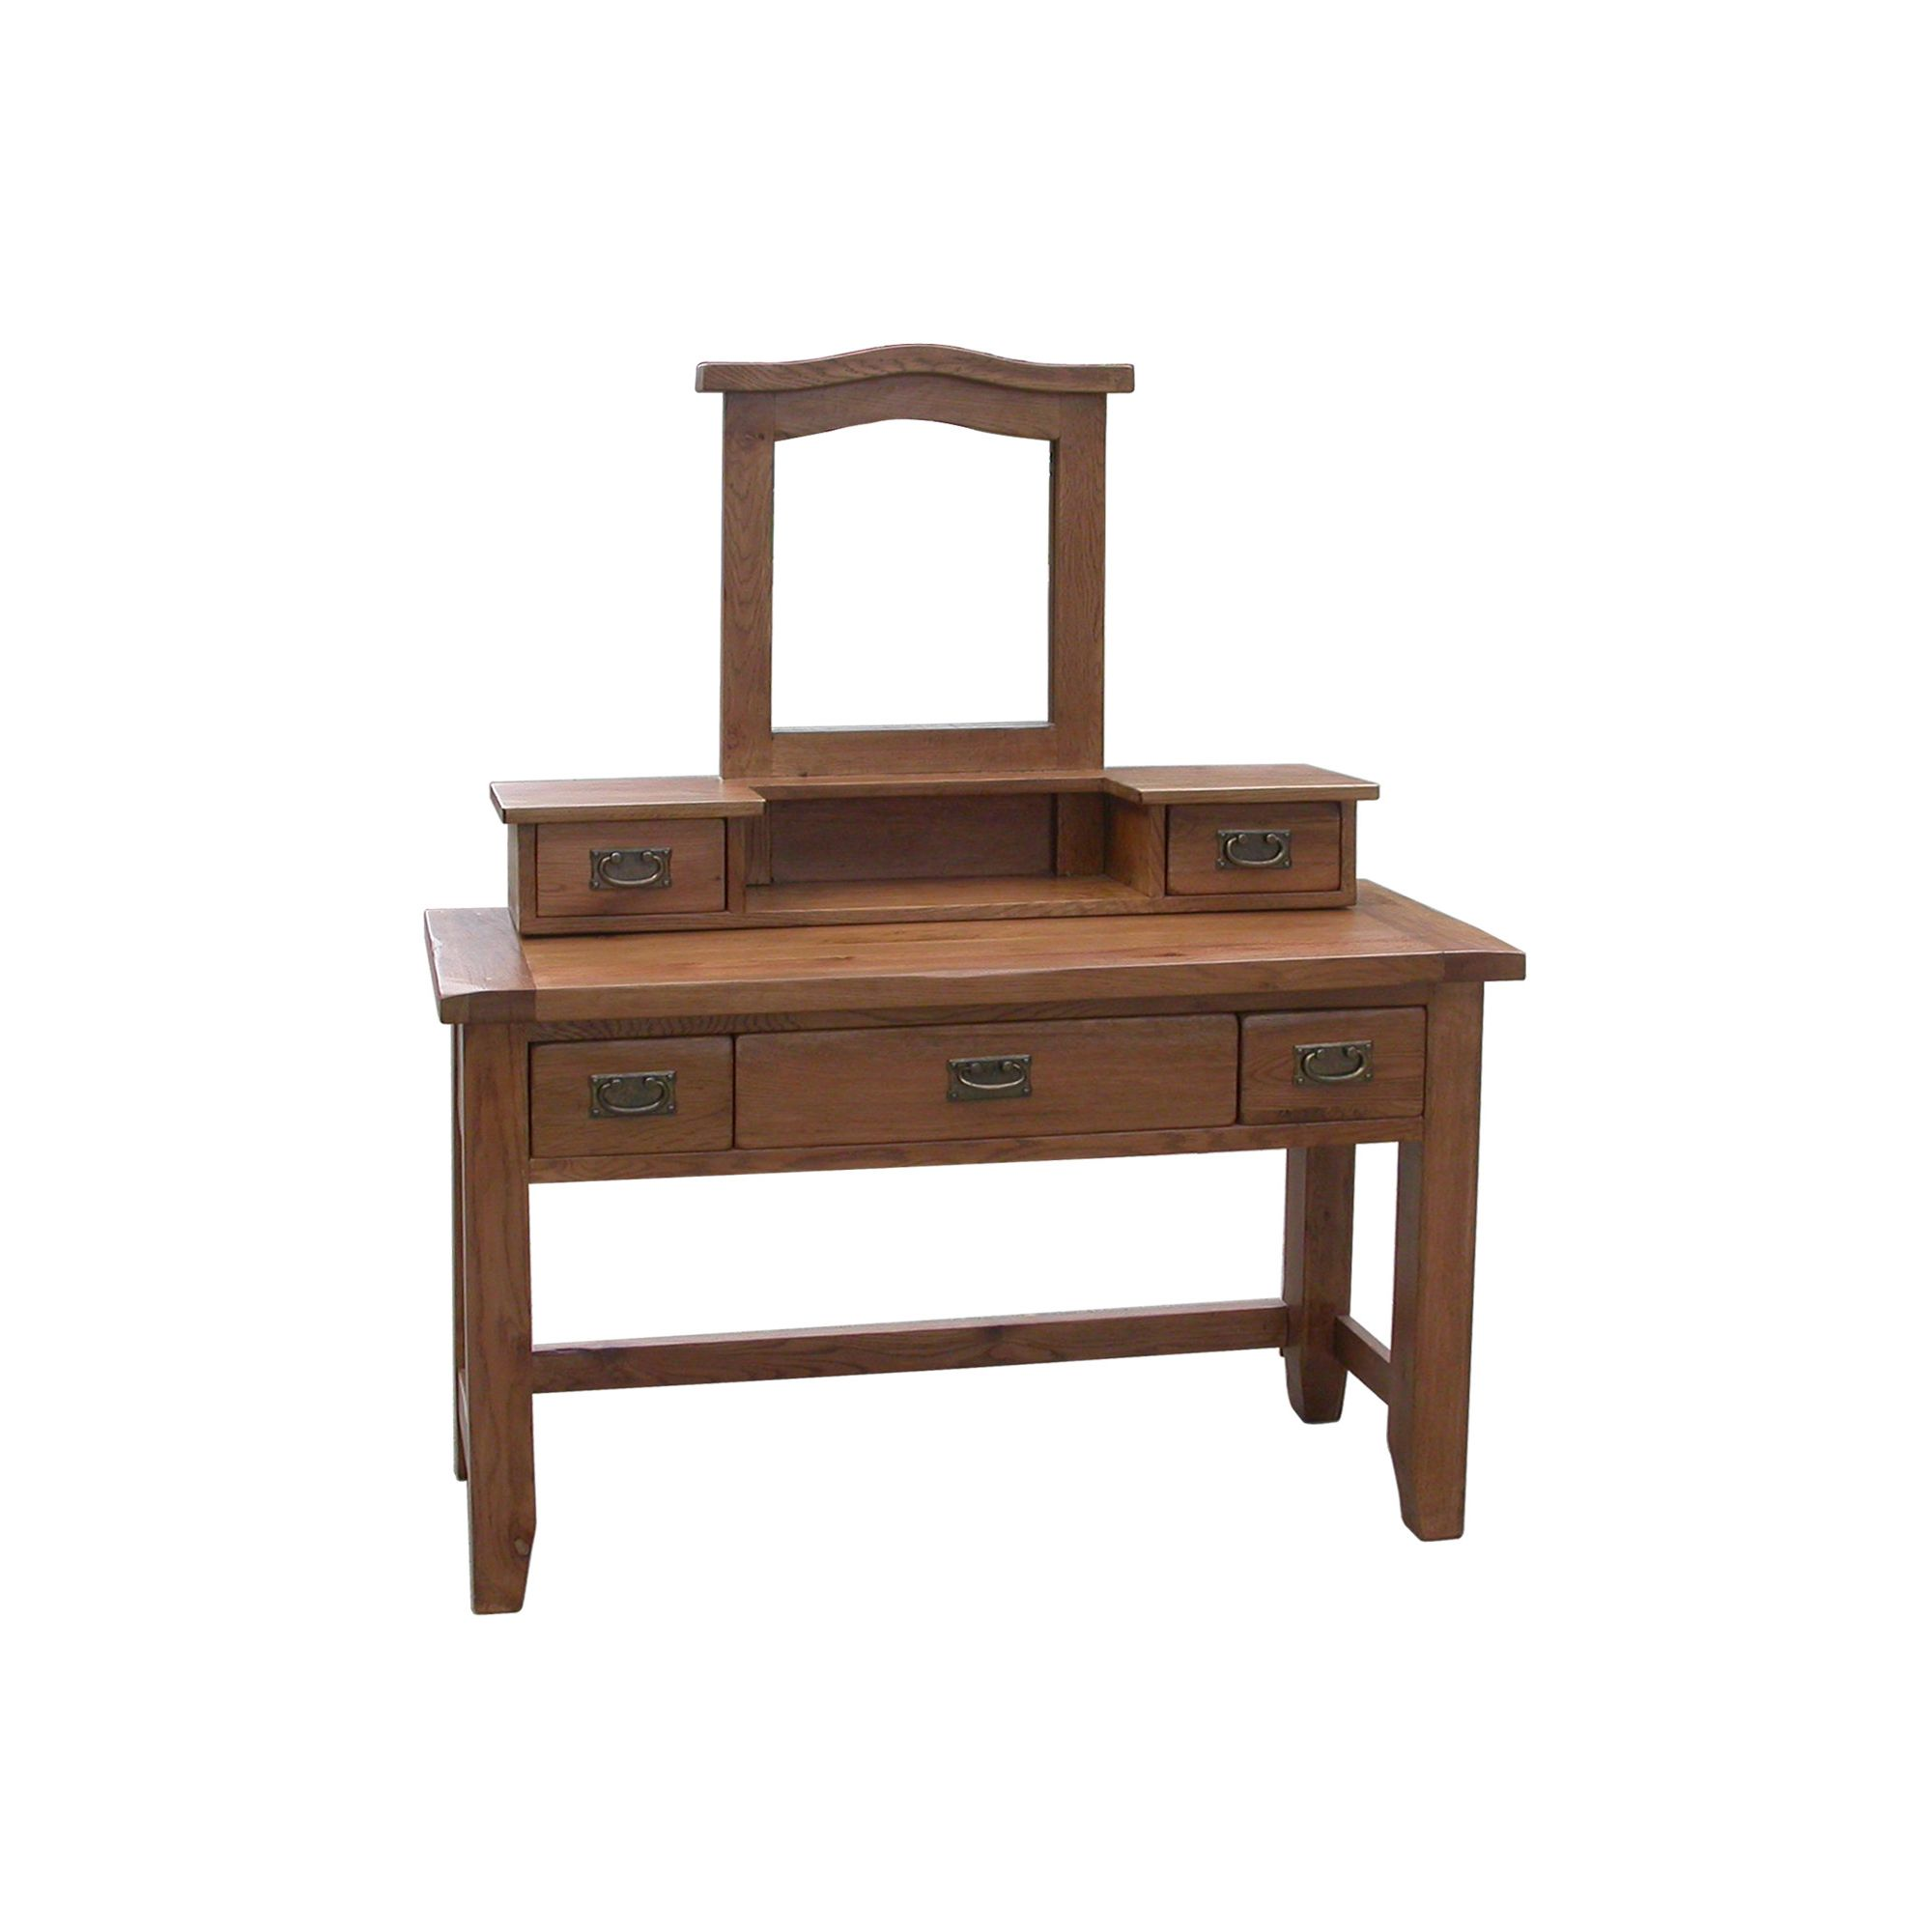 Wiseaction Florence Dressing Table at Tesco Direct